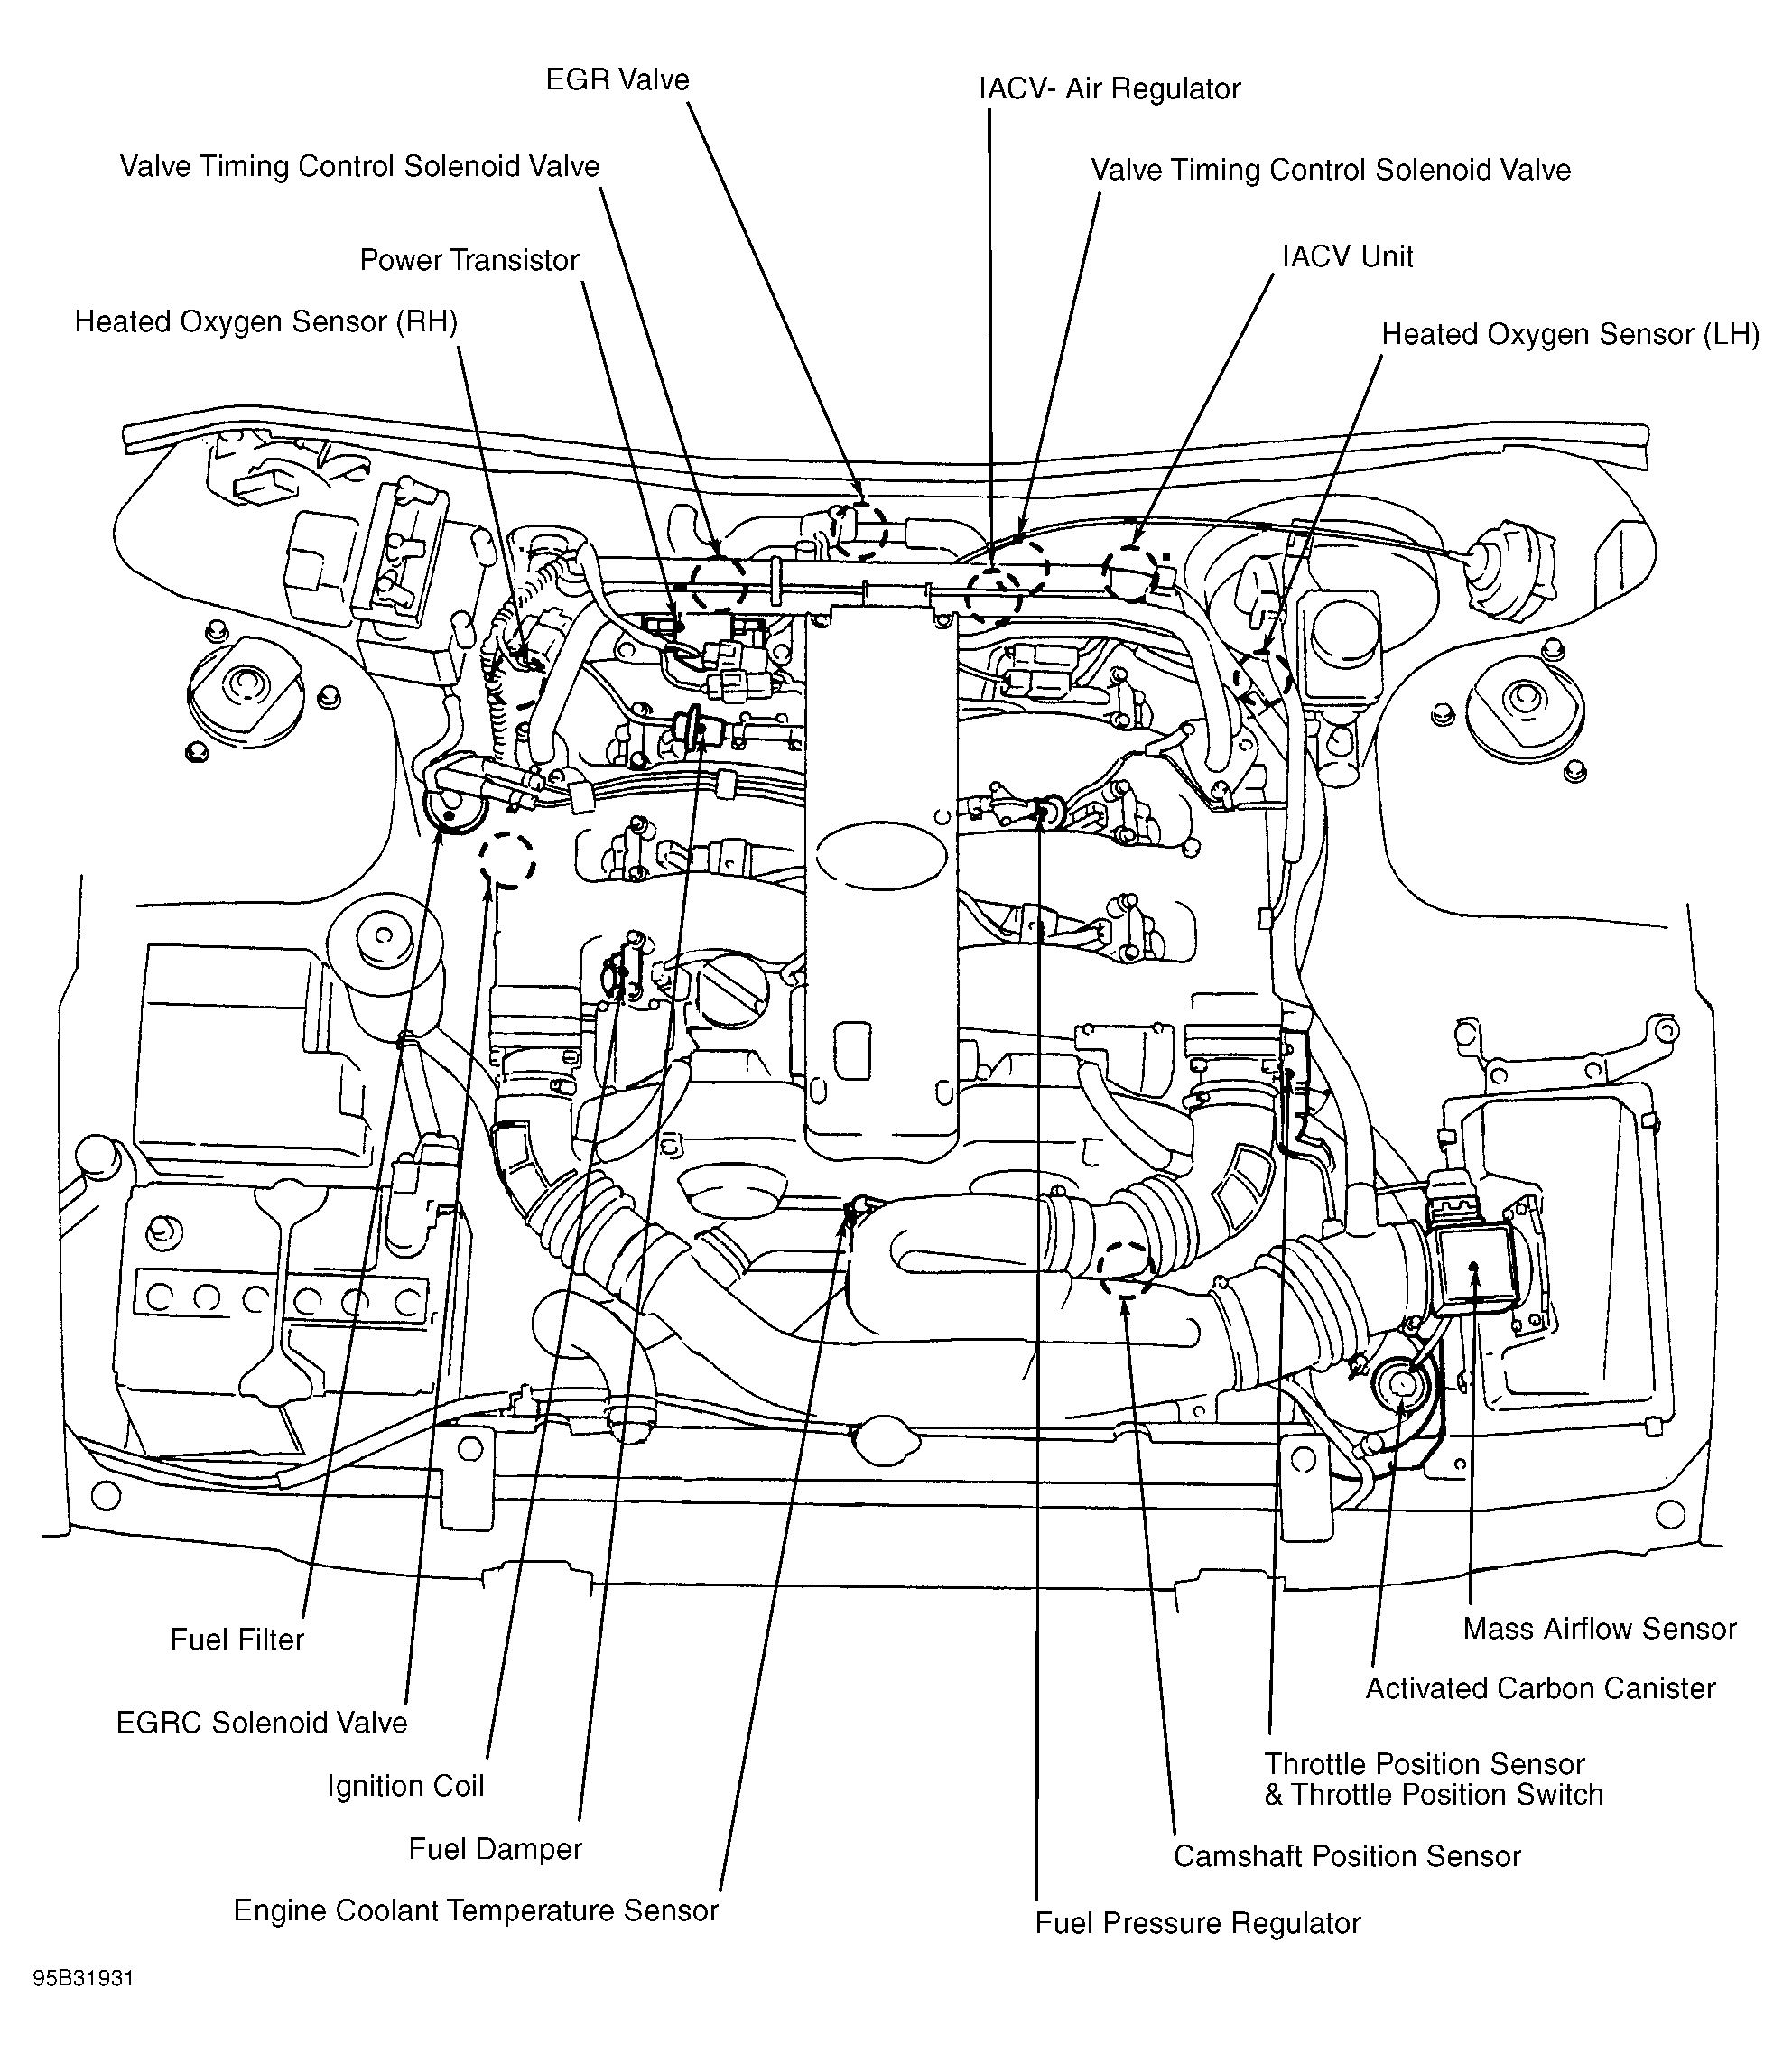 i previously asked for a schematic or diagram of the 1998 infiniti i30 engine diagram 1998 infiniti i30 engine diagram 1998 infiniti i30 engine diagram 1998 infiniti i30 engine diagram